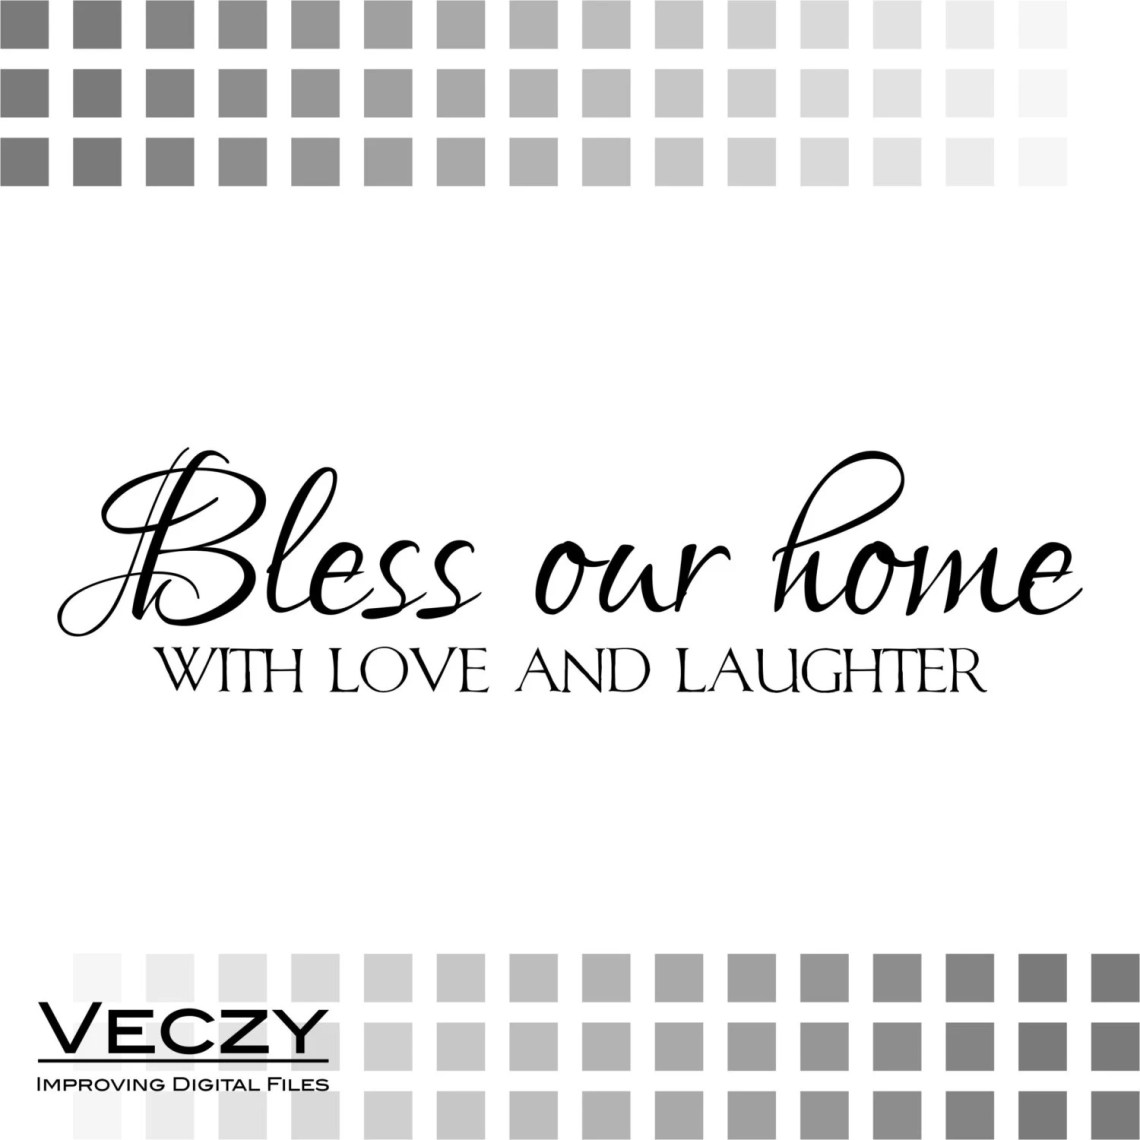 Download Bless our Home with Love and Laughter svg quotes svg by Veczy